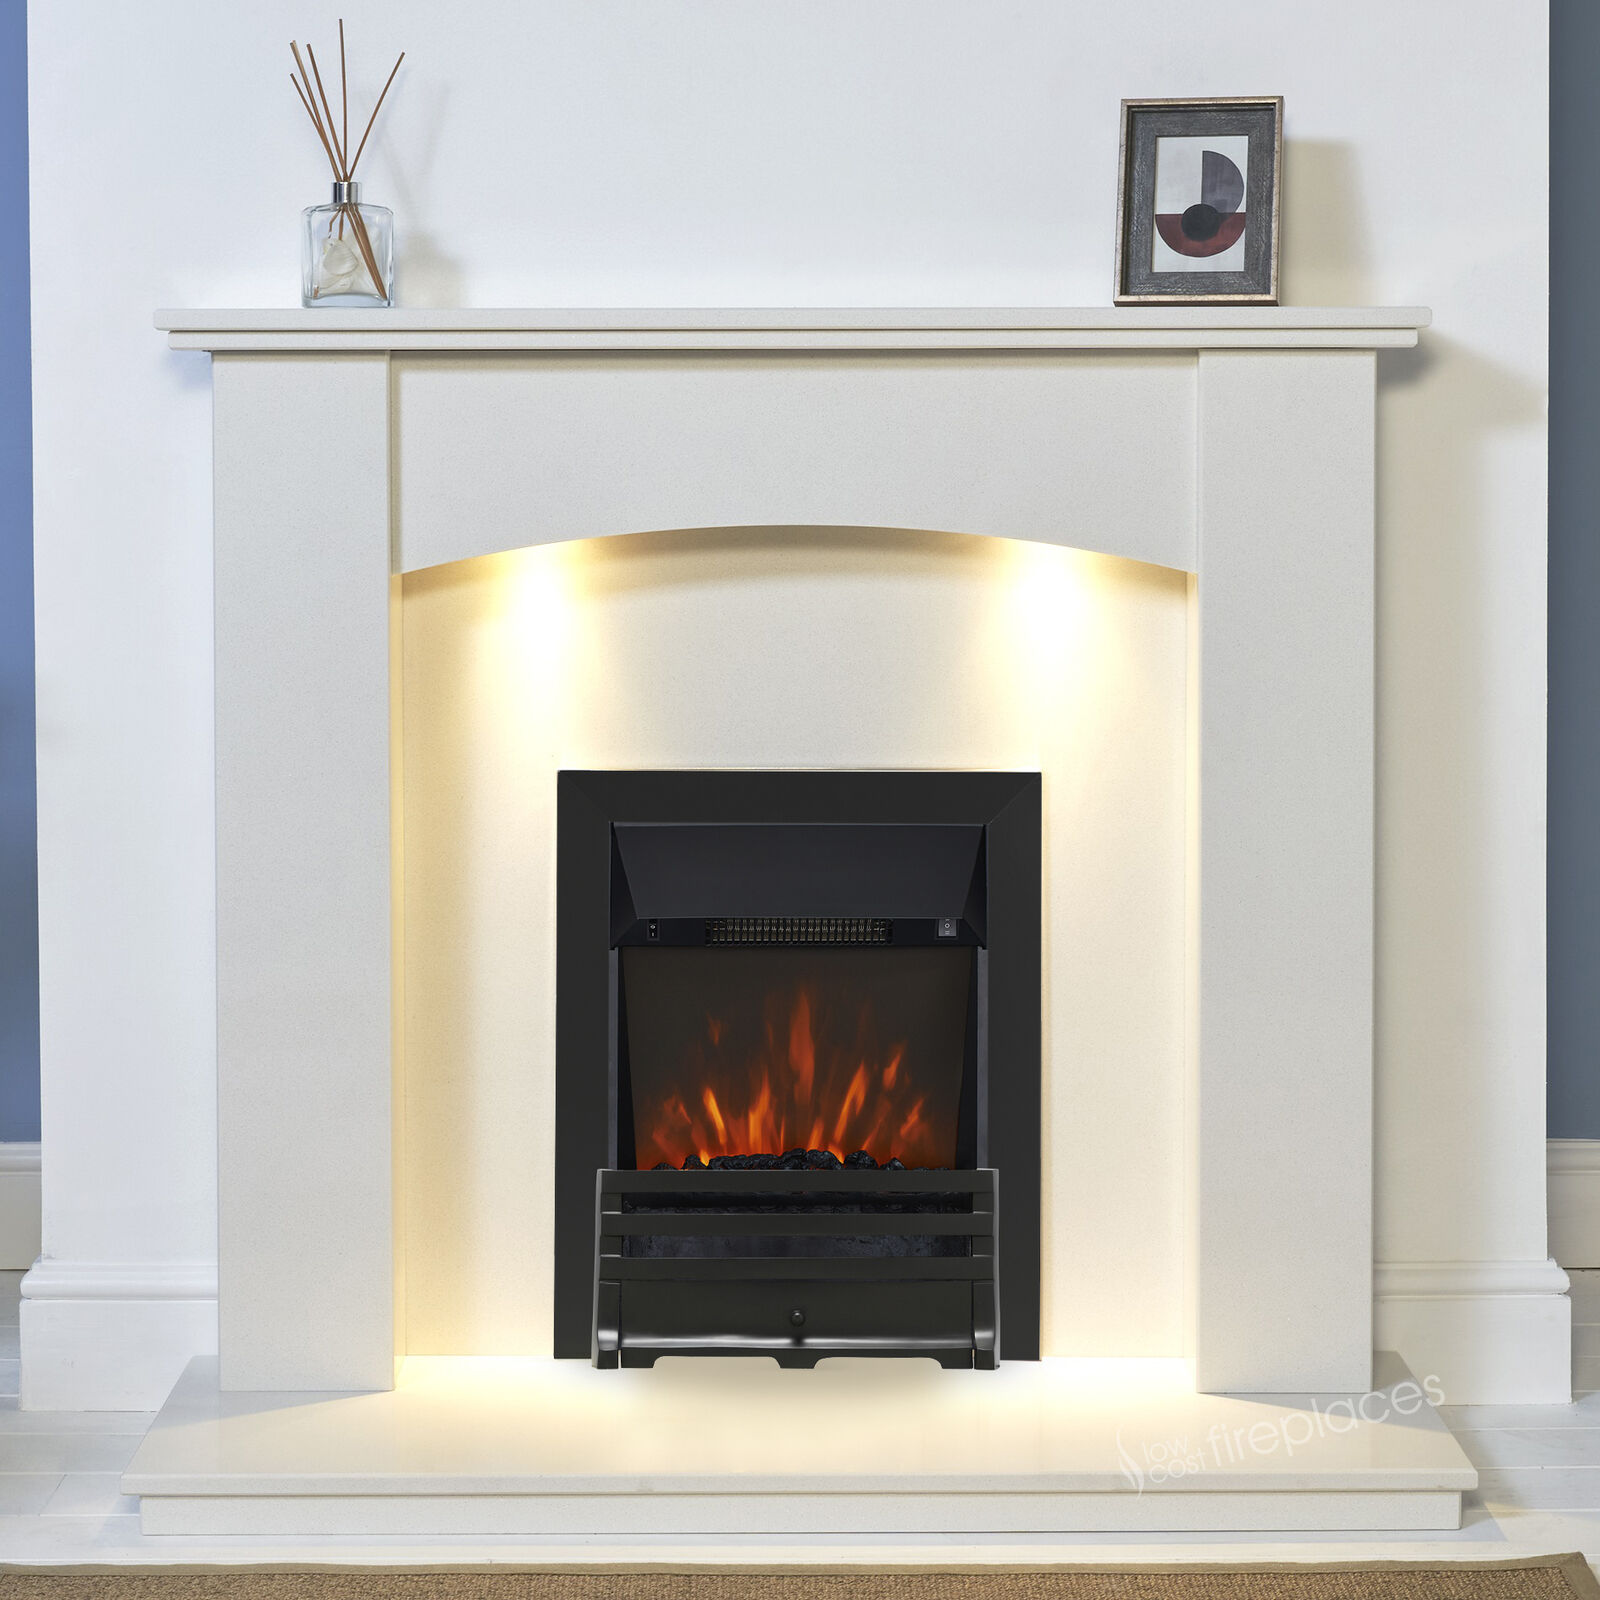 White Marble Curved Surround Black Electric Fire Pebbles Fireplace Suite Lights Ebay